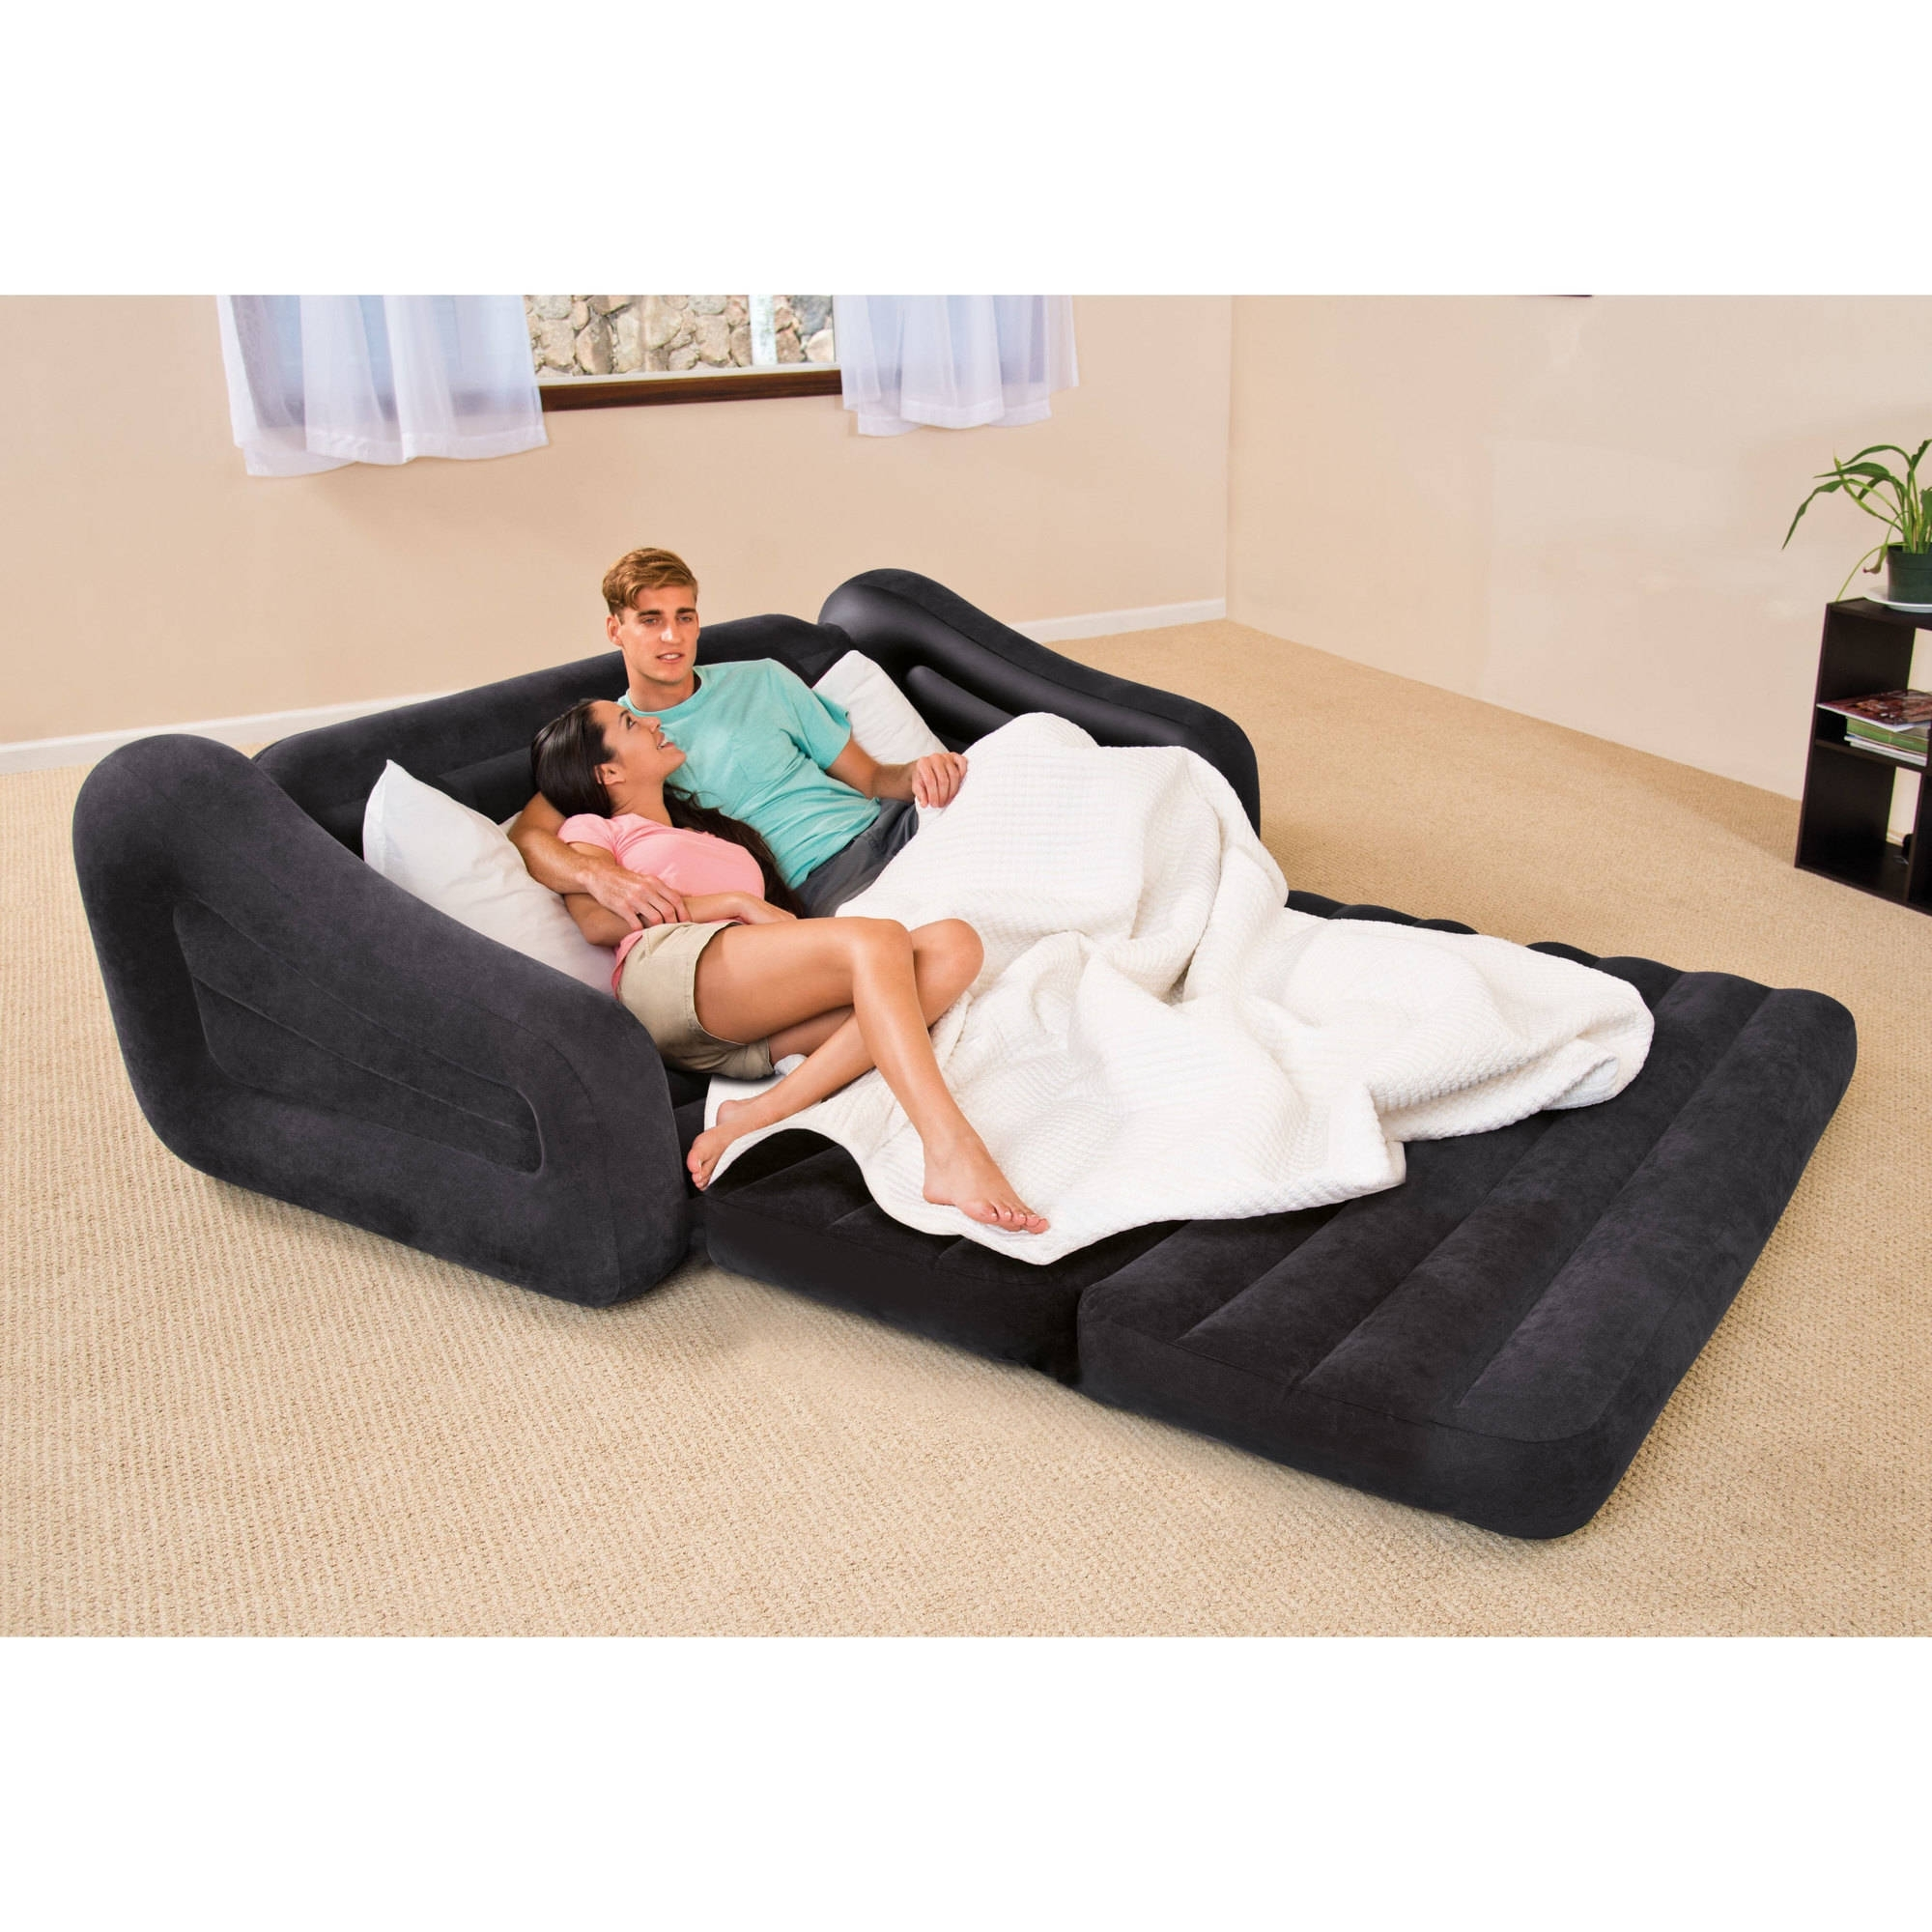 Intex Queen Inflatable Pull Out Sofa Bed - Walmart throughout Queens Ny Sectional Sofas (Image 7 of 10)